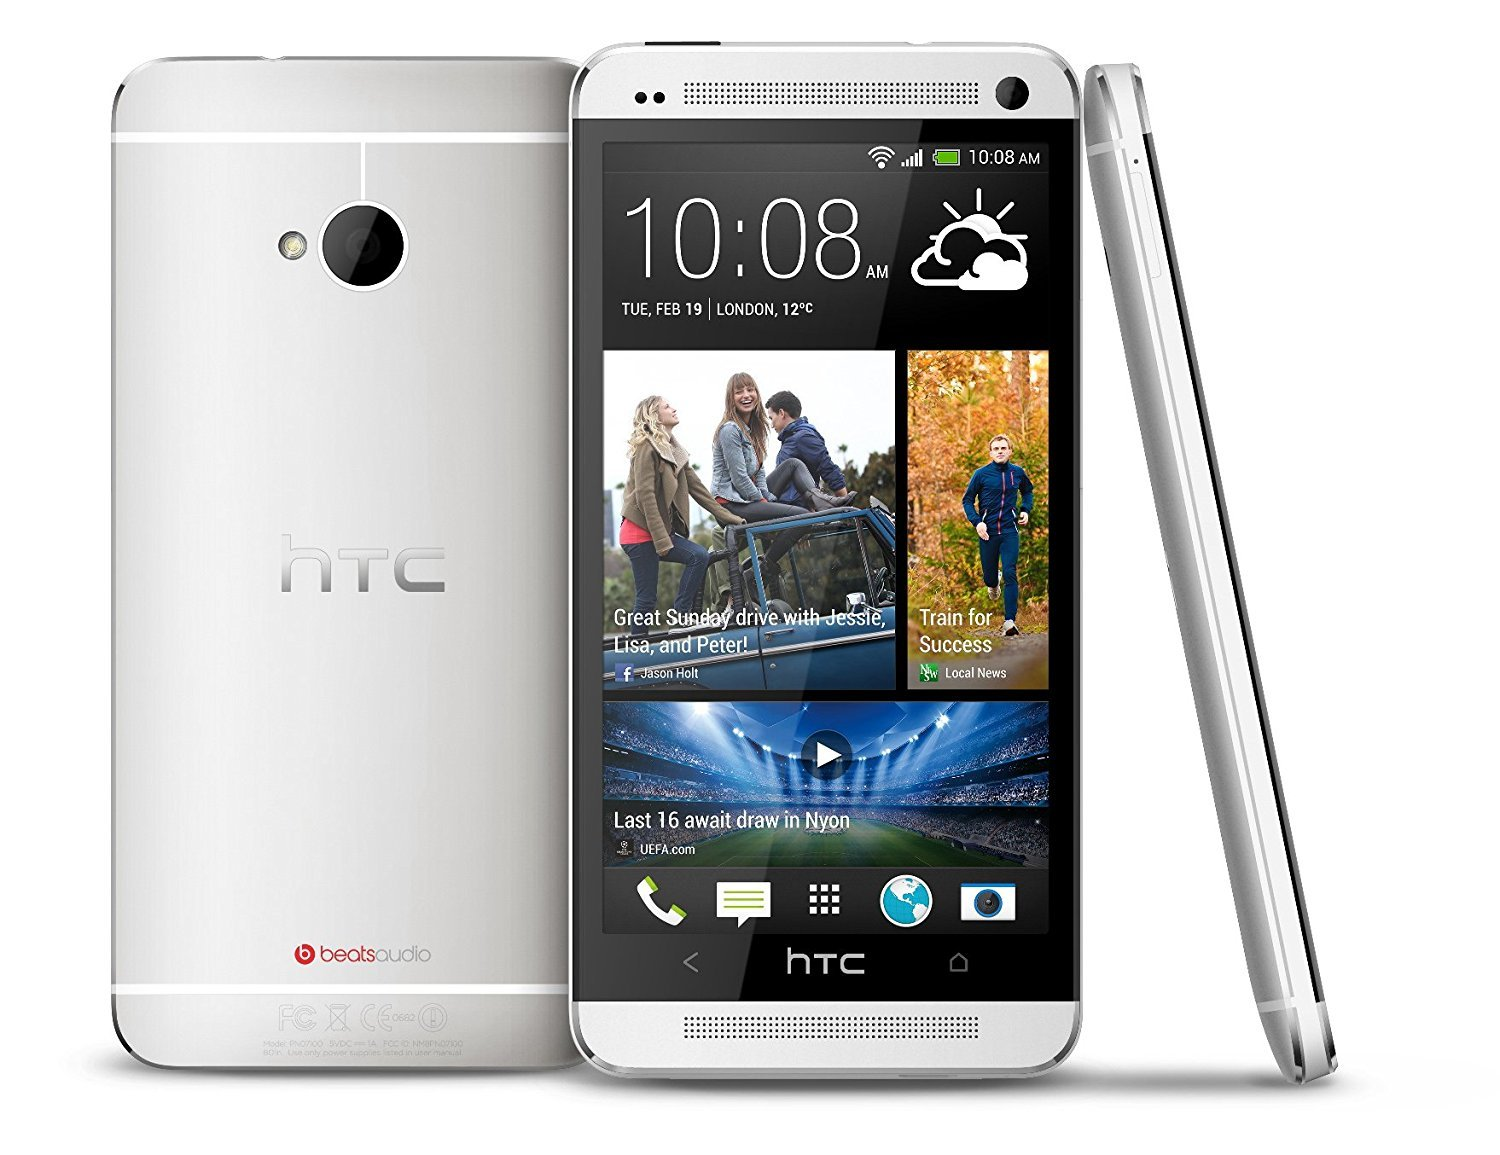 HTC One 32GB Unlocked GSM 4G LTE Android Smartphone w/Beats Audio - Silver